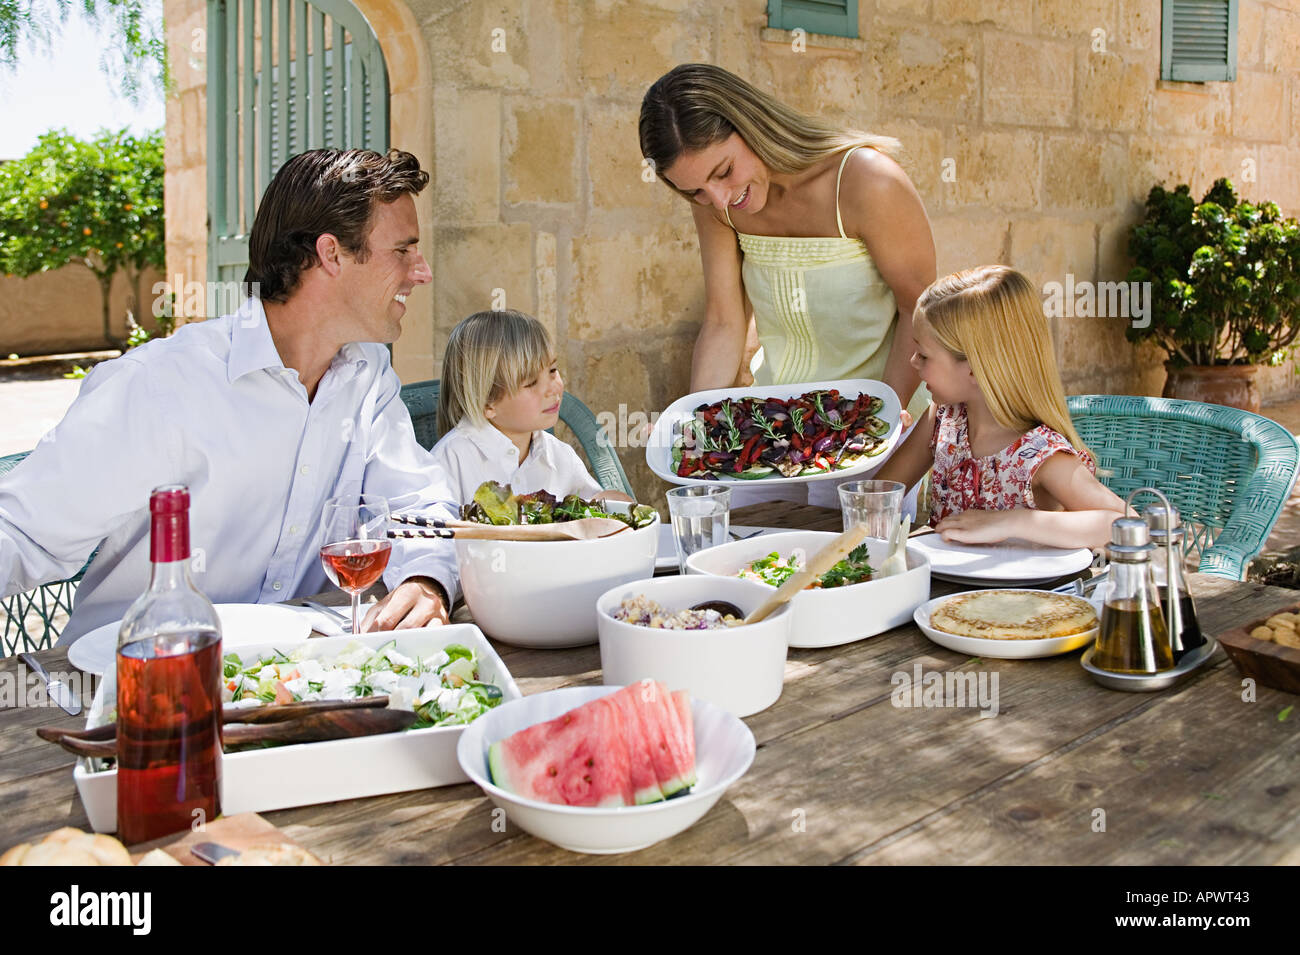 Family dining al fresco - Stock Image